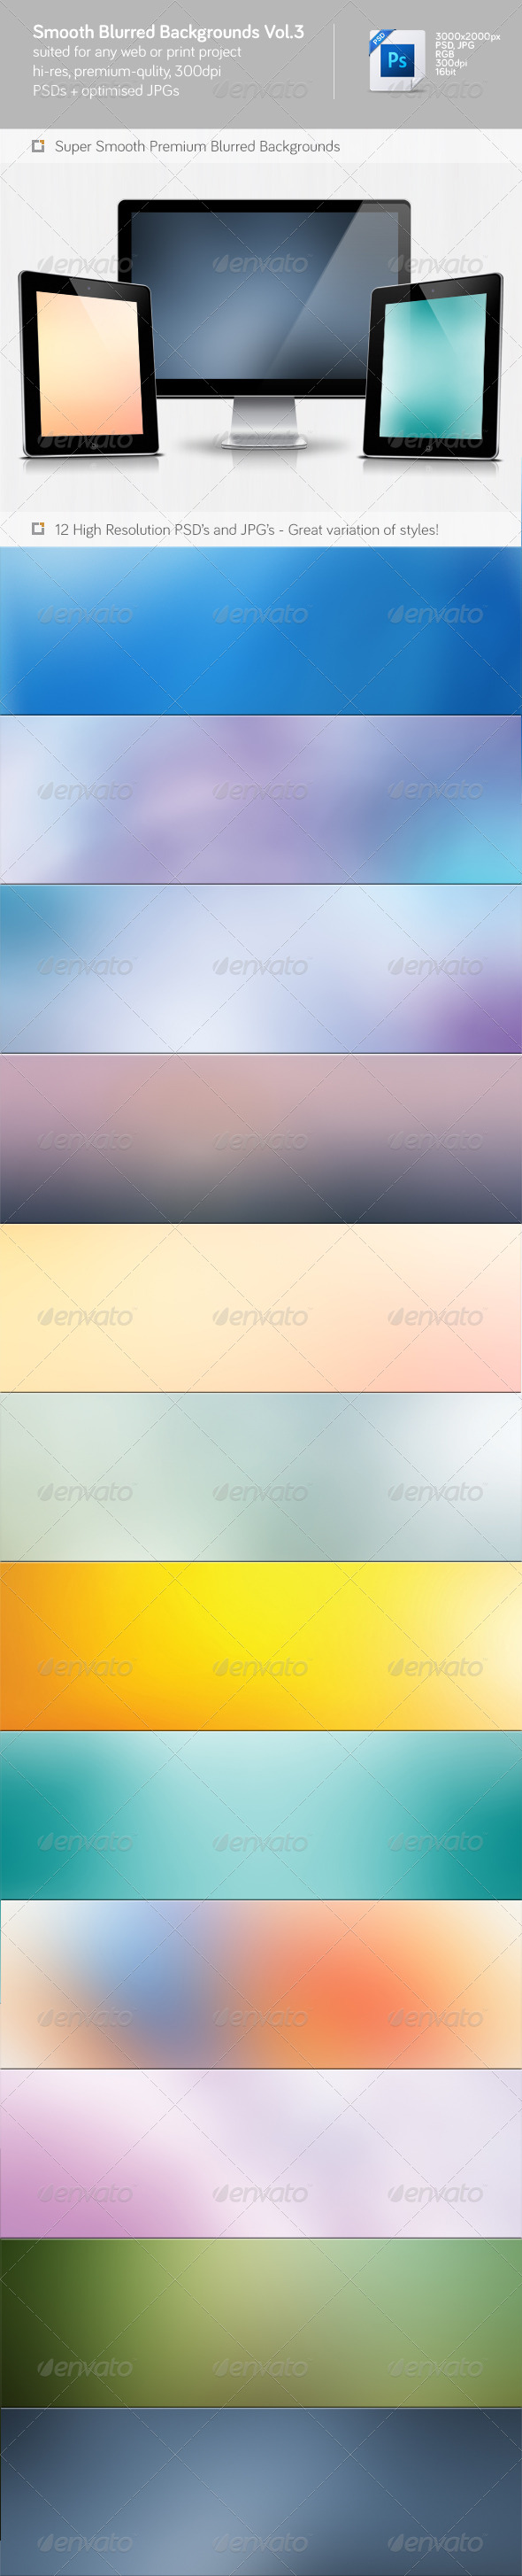 Smooth Blurred Backgrounds Vol.3 - Abstract Backgrounds